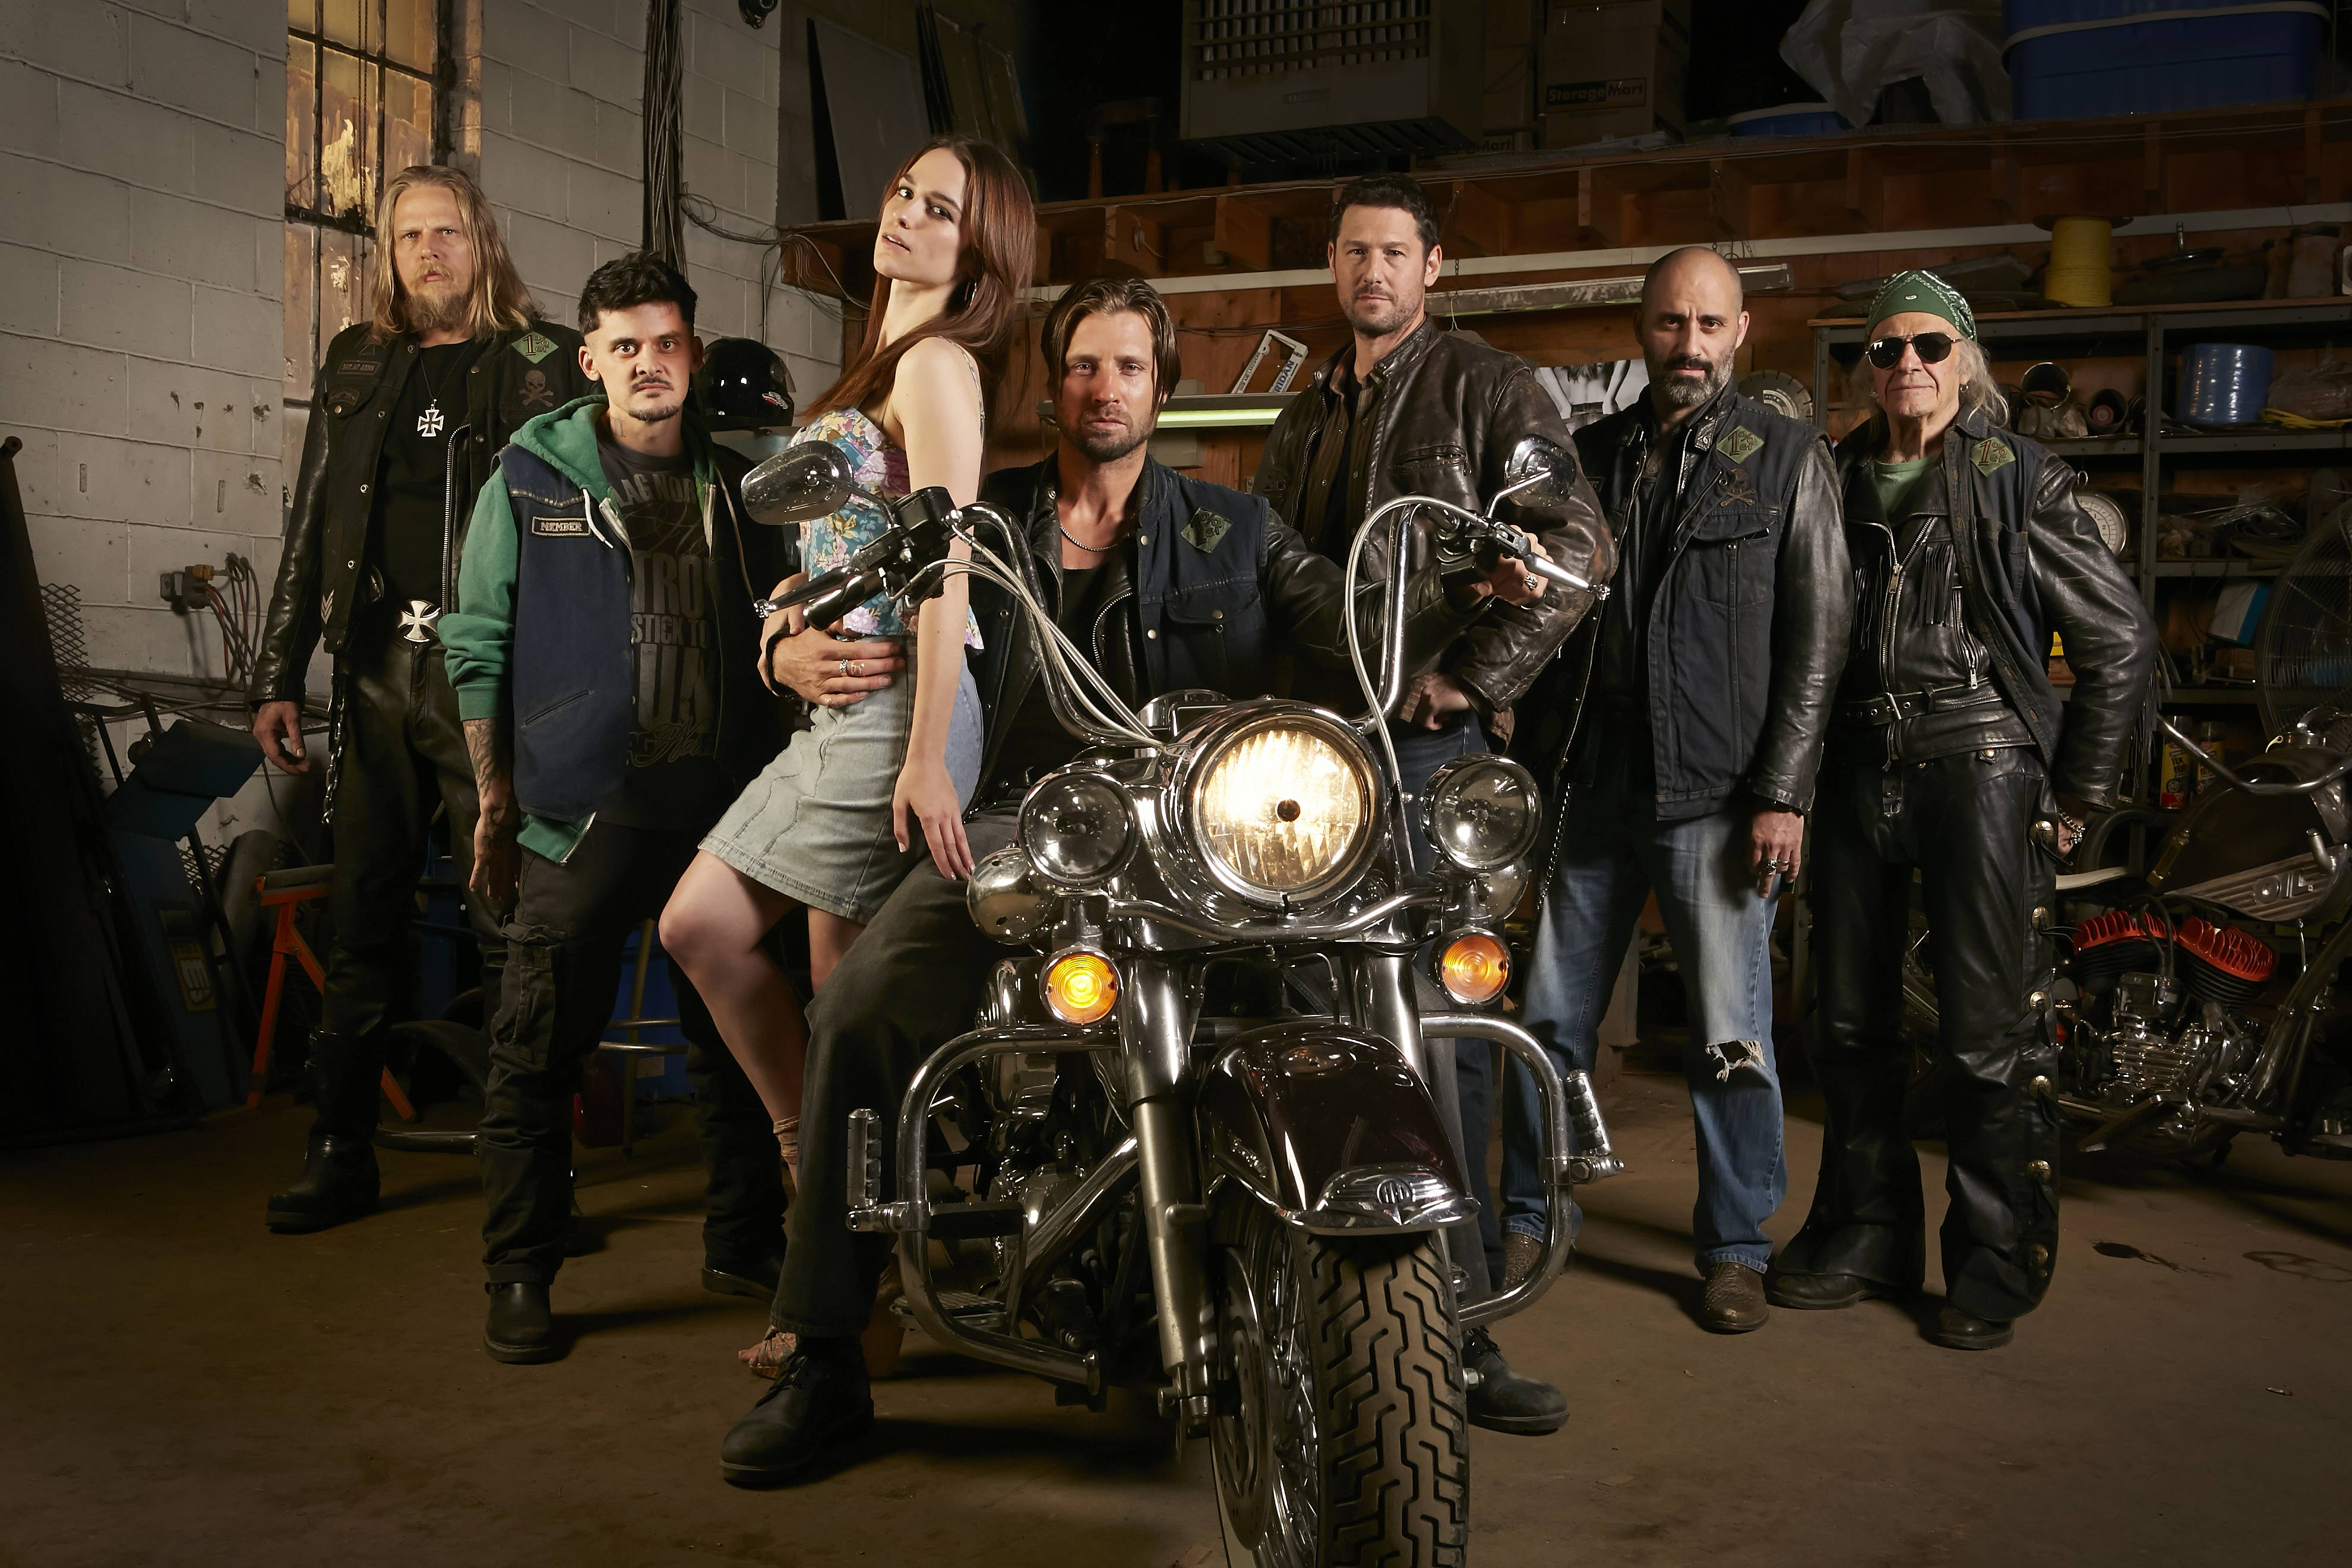 GANGLAND UNDERCOVER - Series 1, Gallery